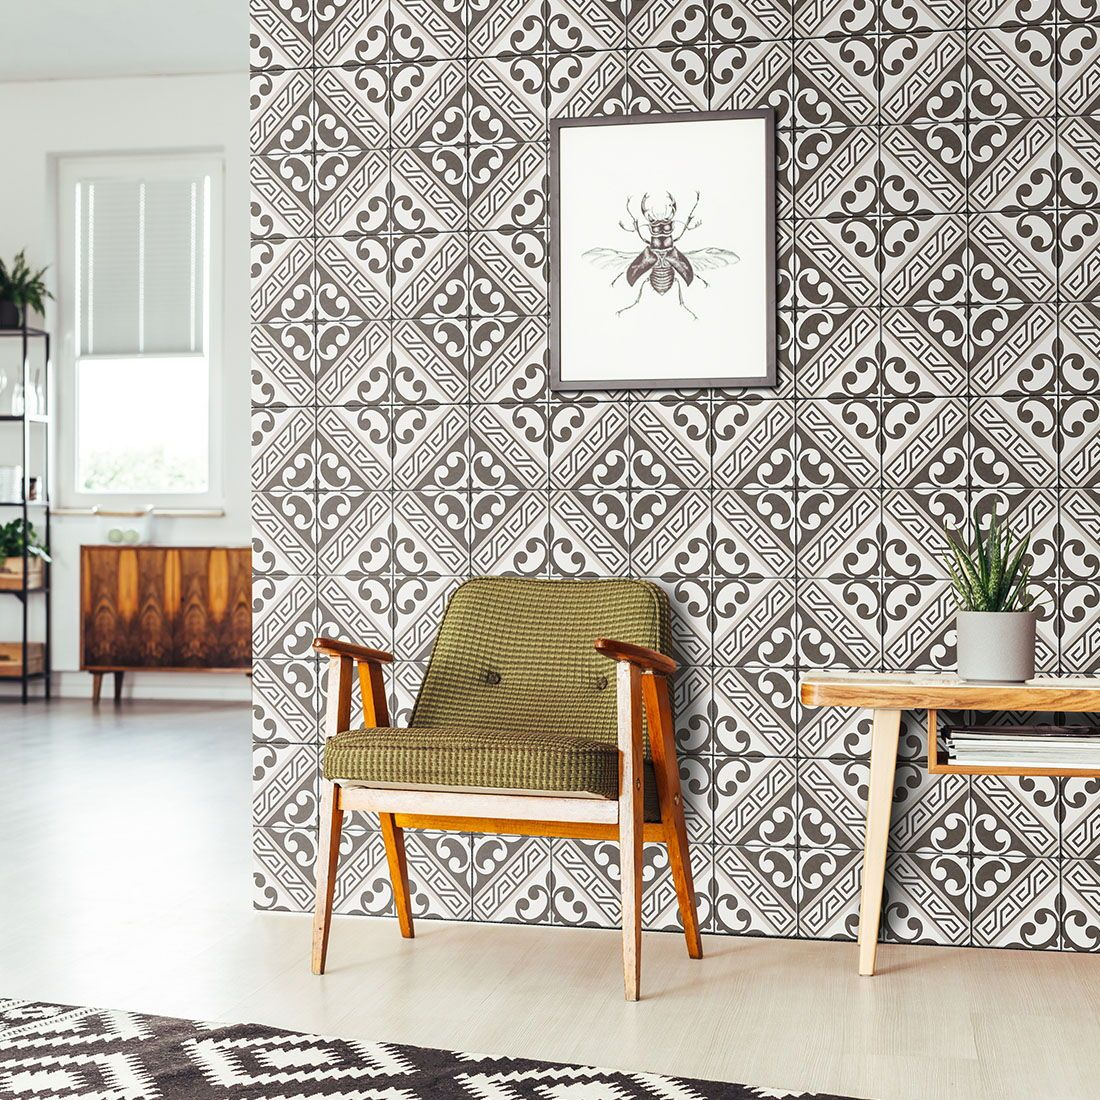 Inspired By Classic Handmade Encaustic Tiles The Encaustic Look Revival Series Boasts Elaborate Patterns Formed From Tile Trends Traditional Interior Interior